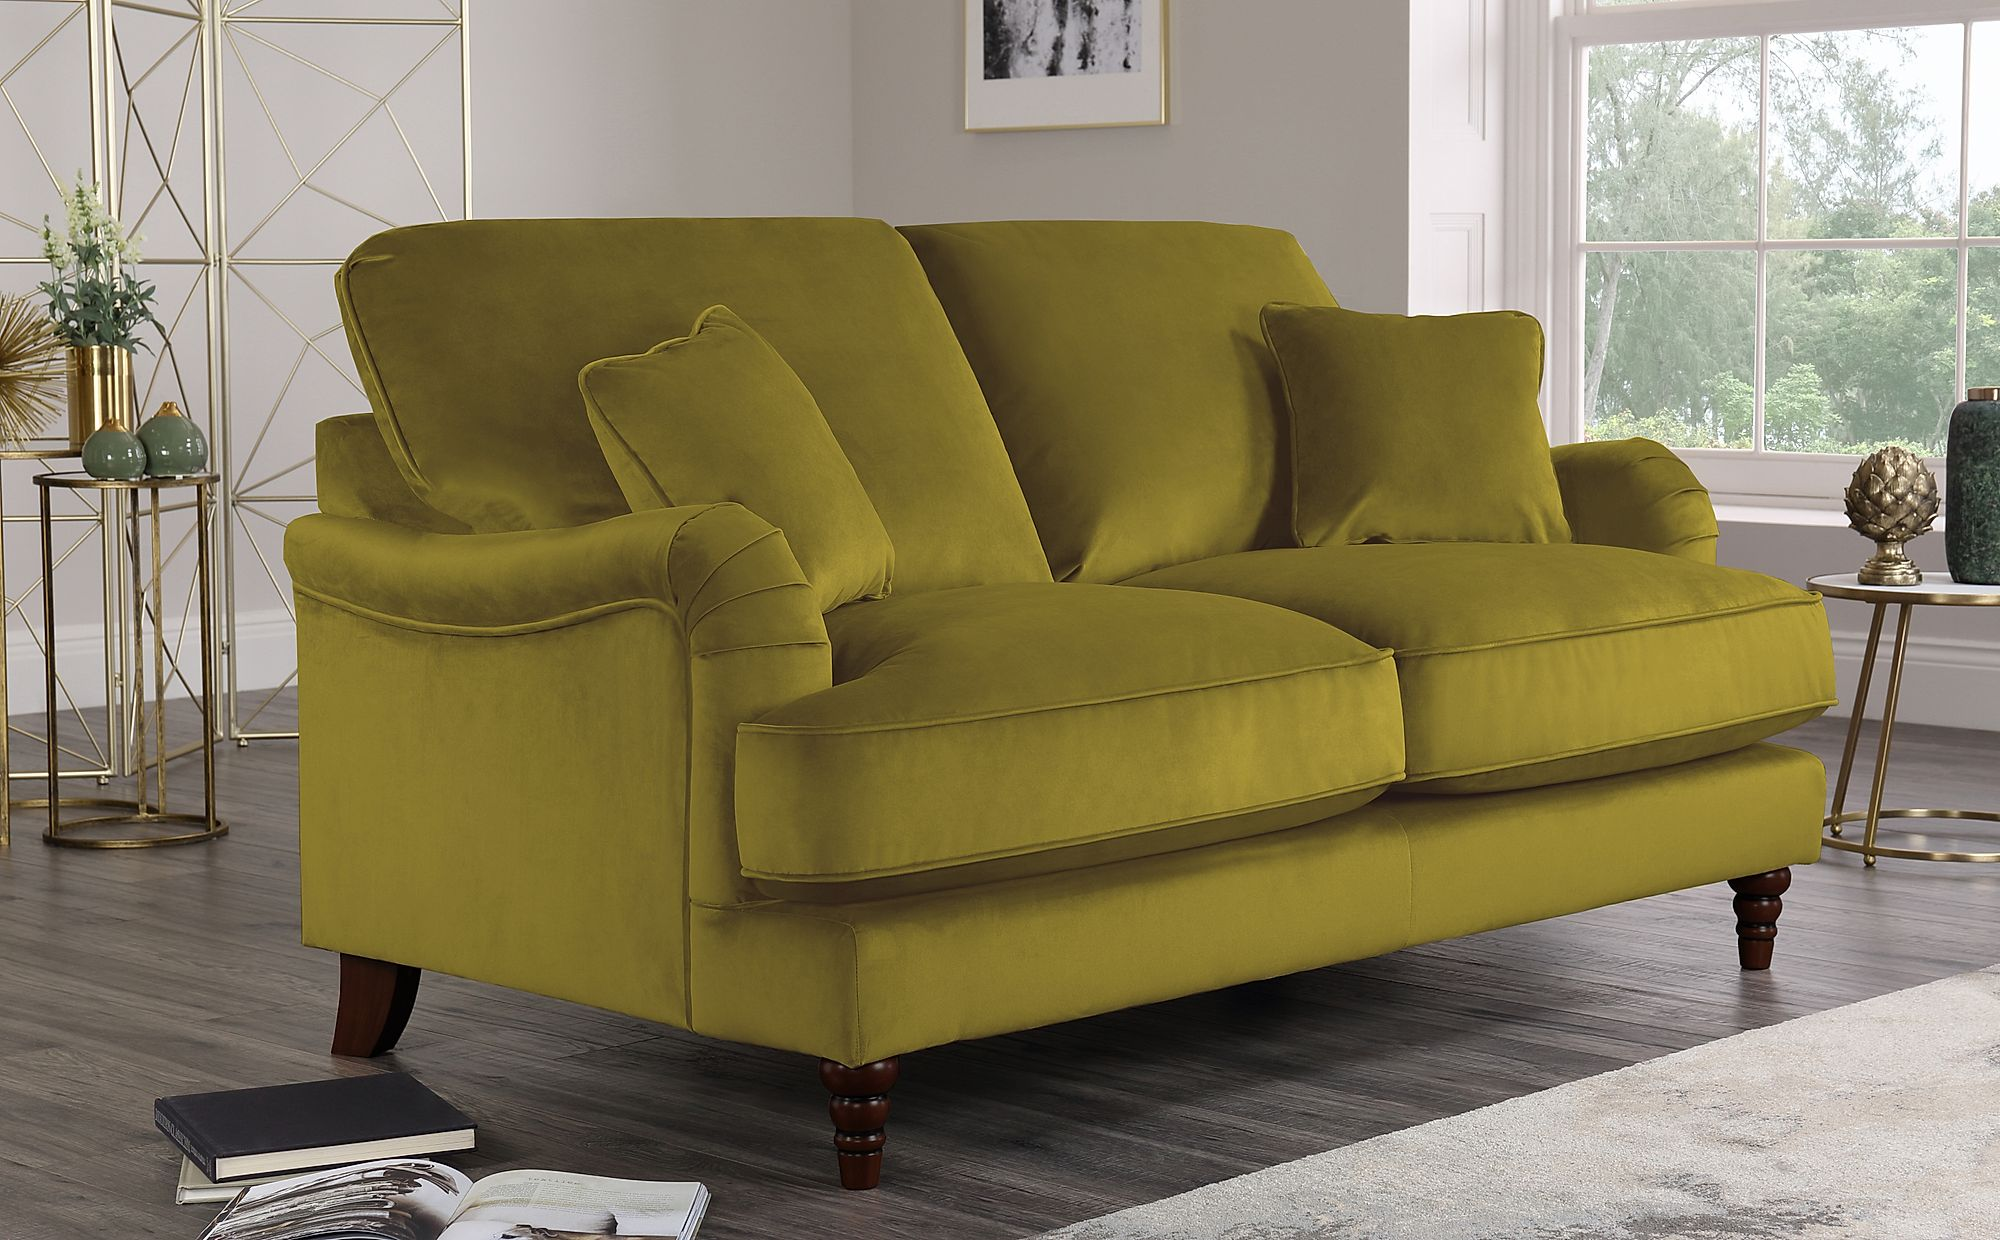 Charleston Olive Green Velvet Sofa 2 Seater Only £649.99